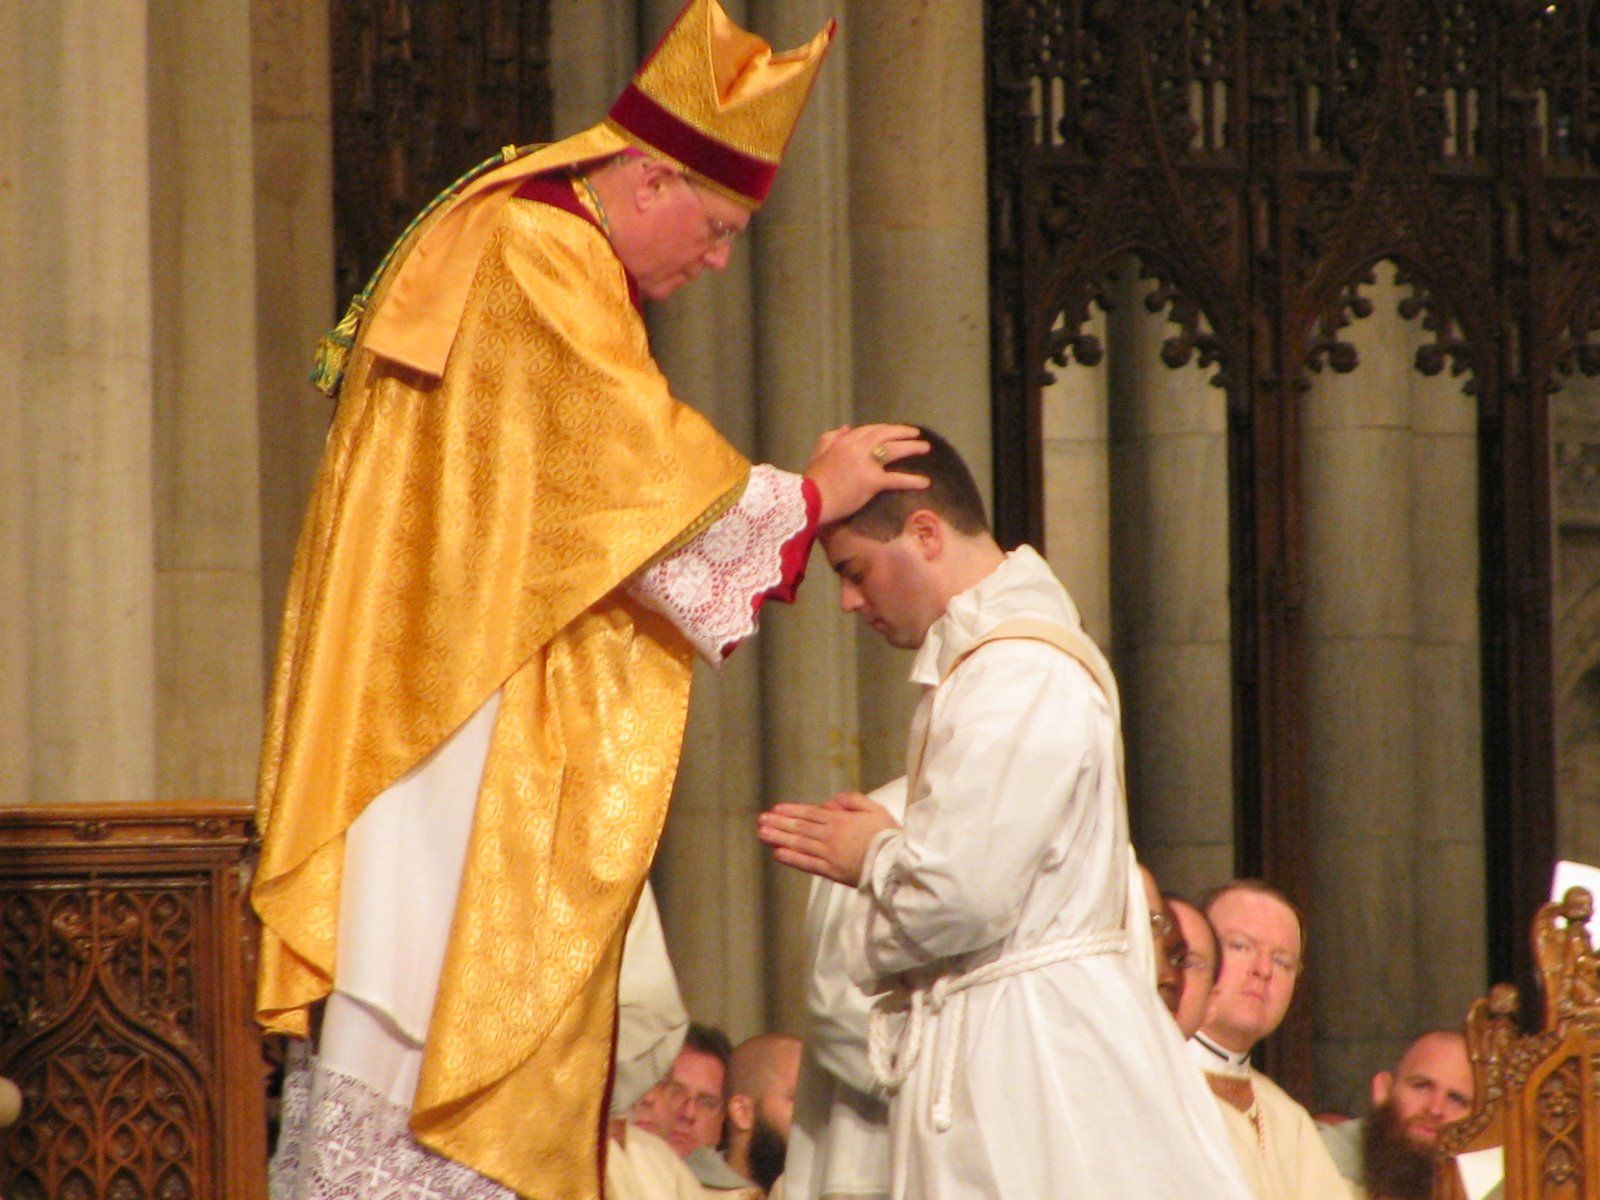 Catholic teaching in this sacrament ordination is a process in which men are integrated into for Ordination images